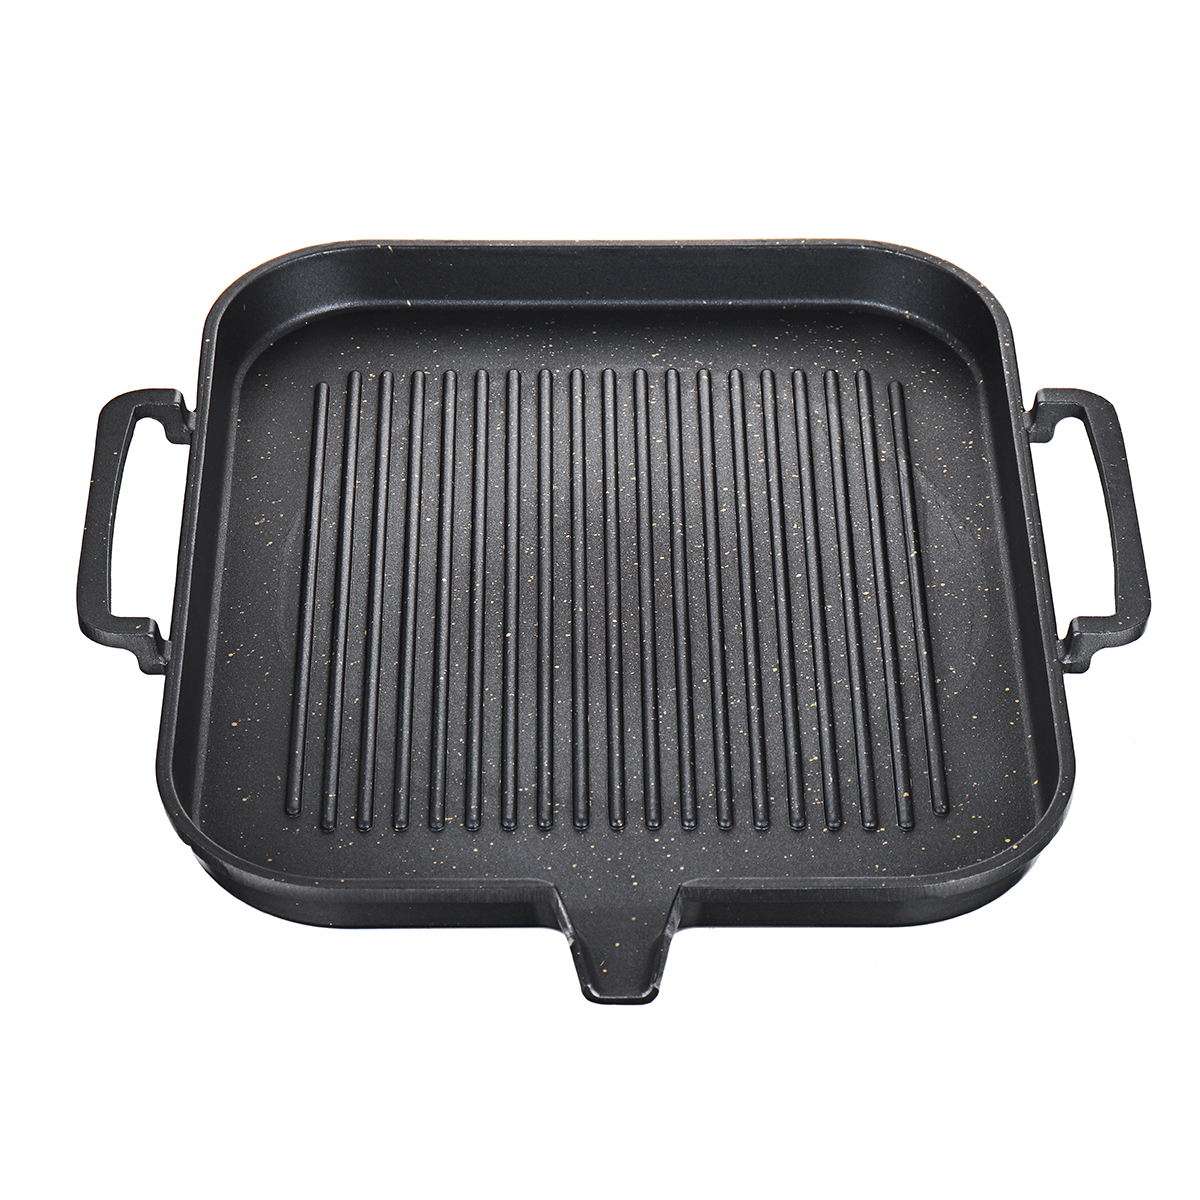 Grill Frying Pan Bbq Grill Pan Non Stick Cooking Grill Pan Iron Steak Frying Pan Camping Picnic Cookware